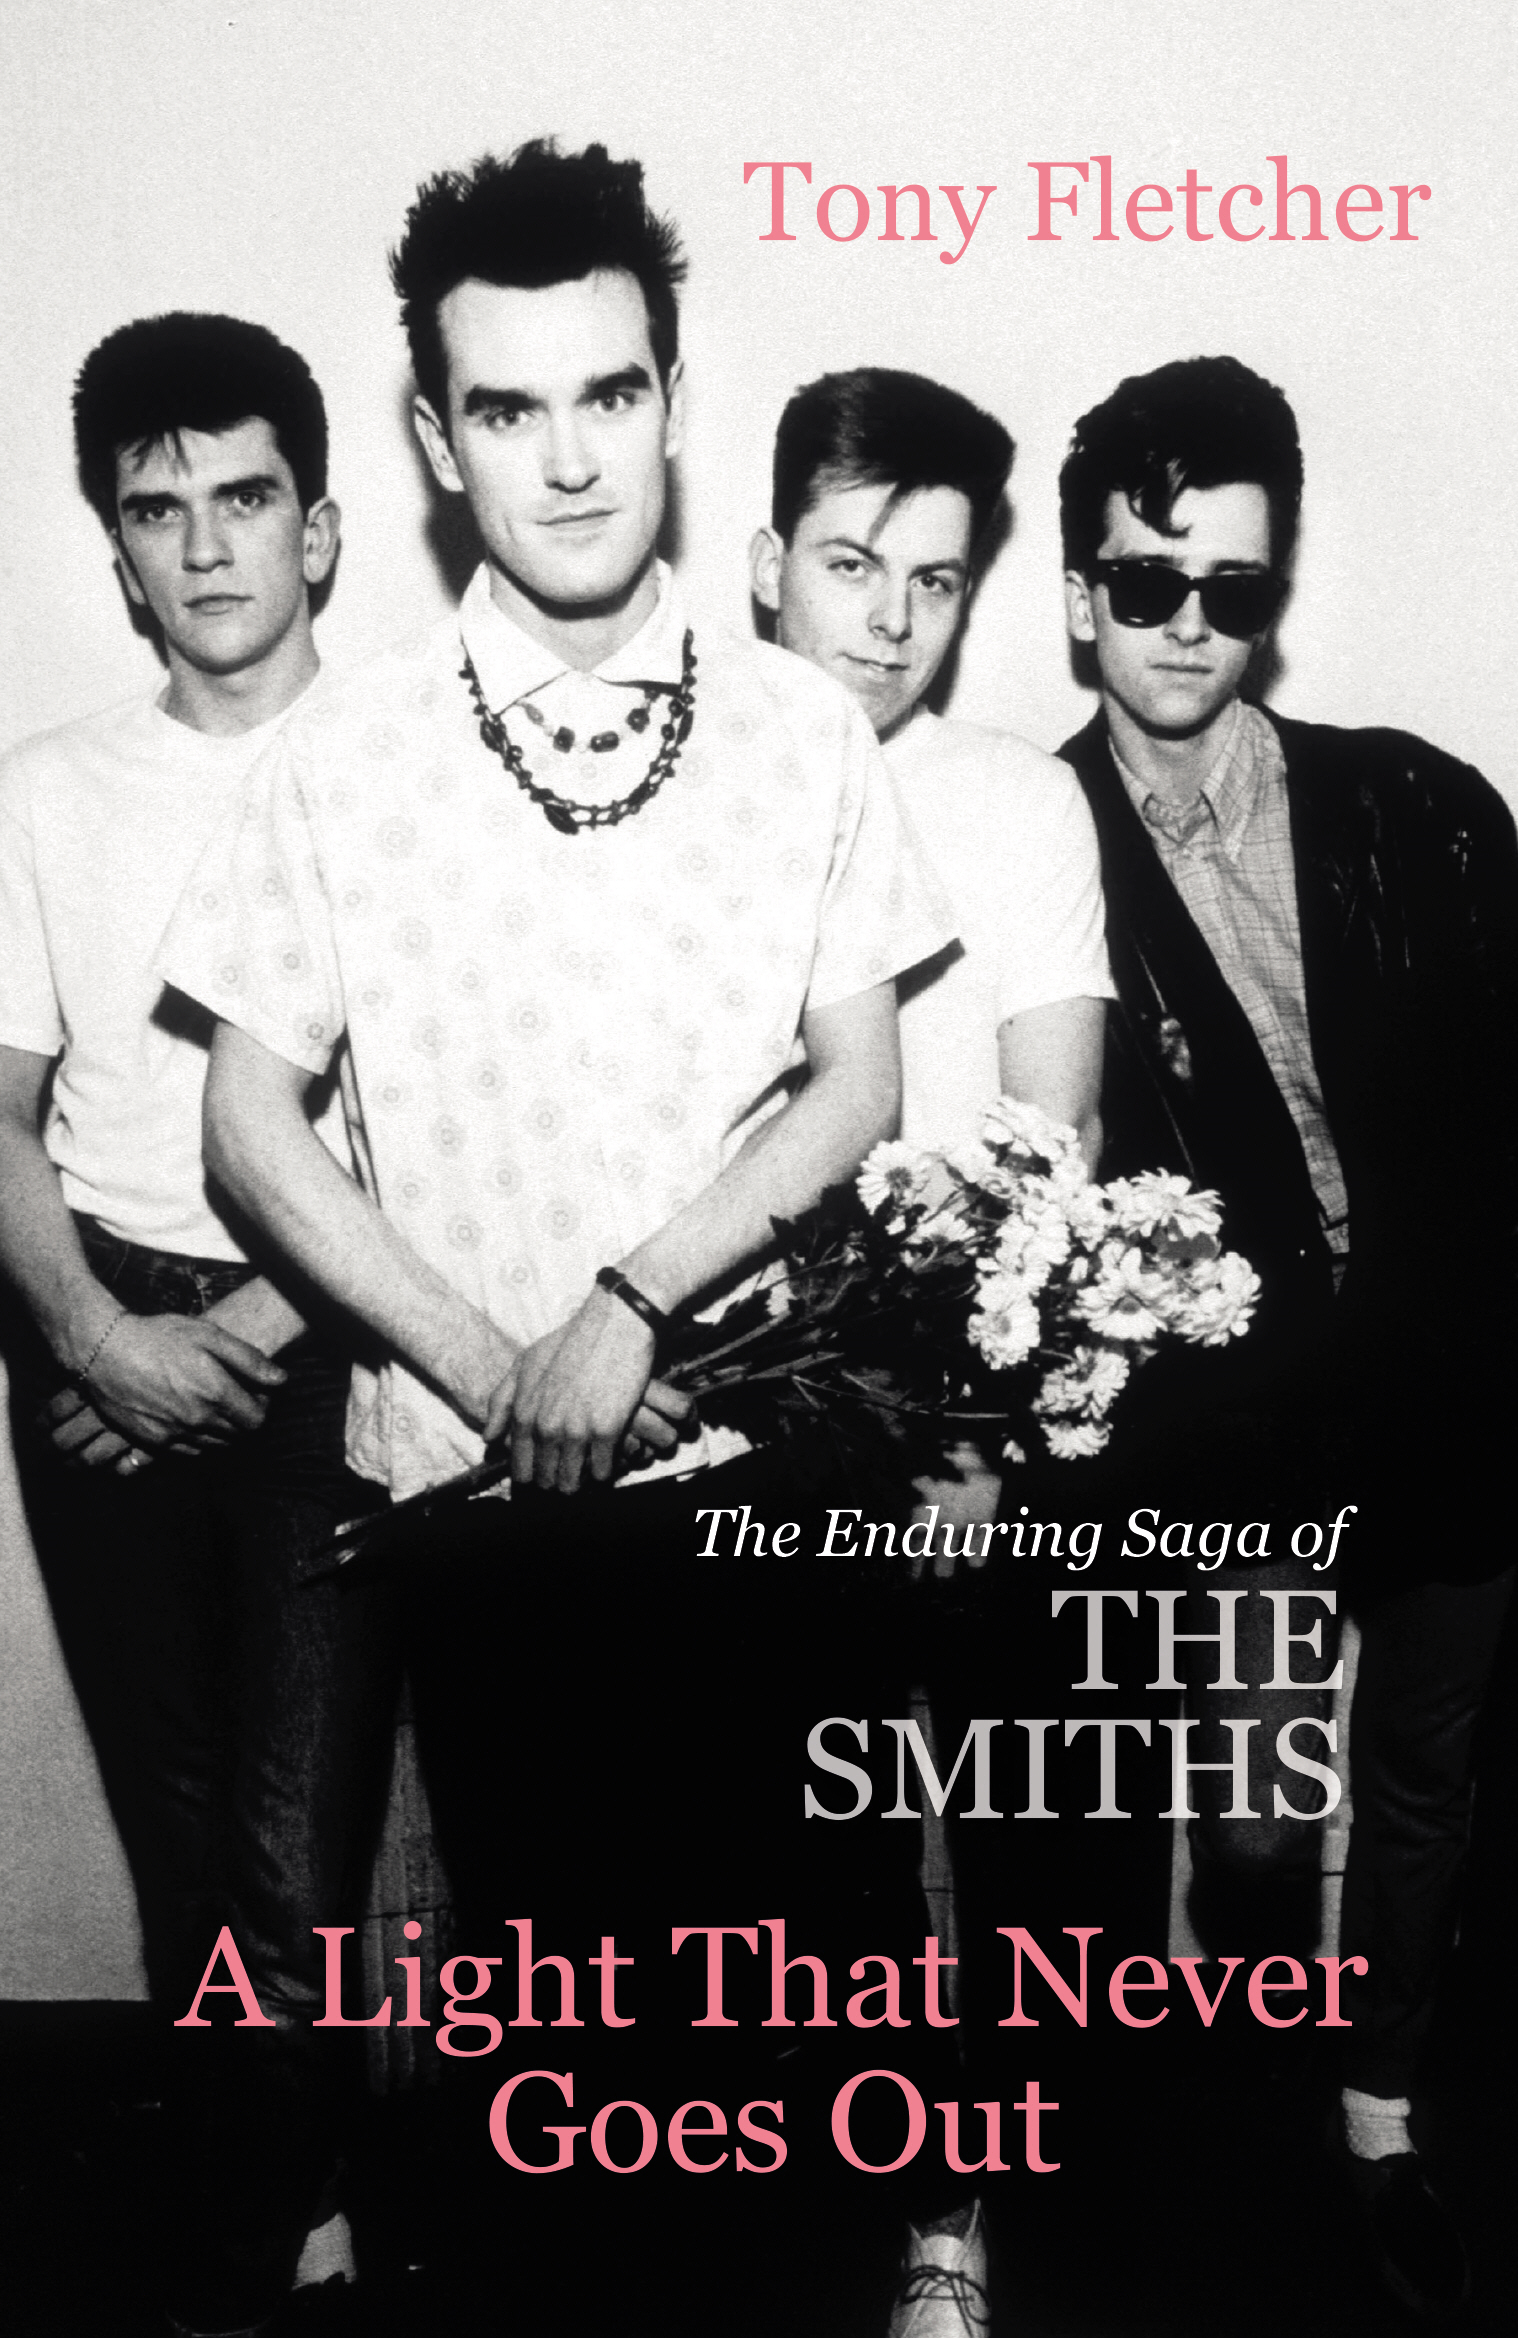 A Light That Never Goes Out The Enduring Saga of the Smiths